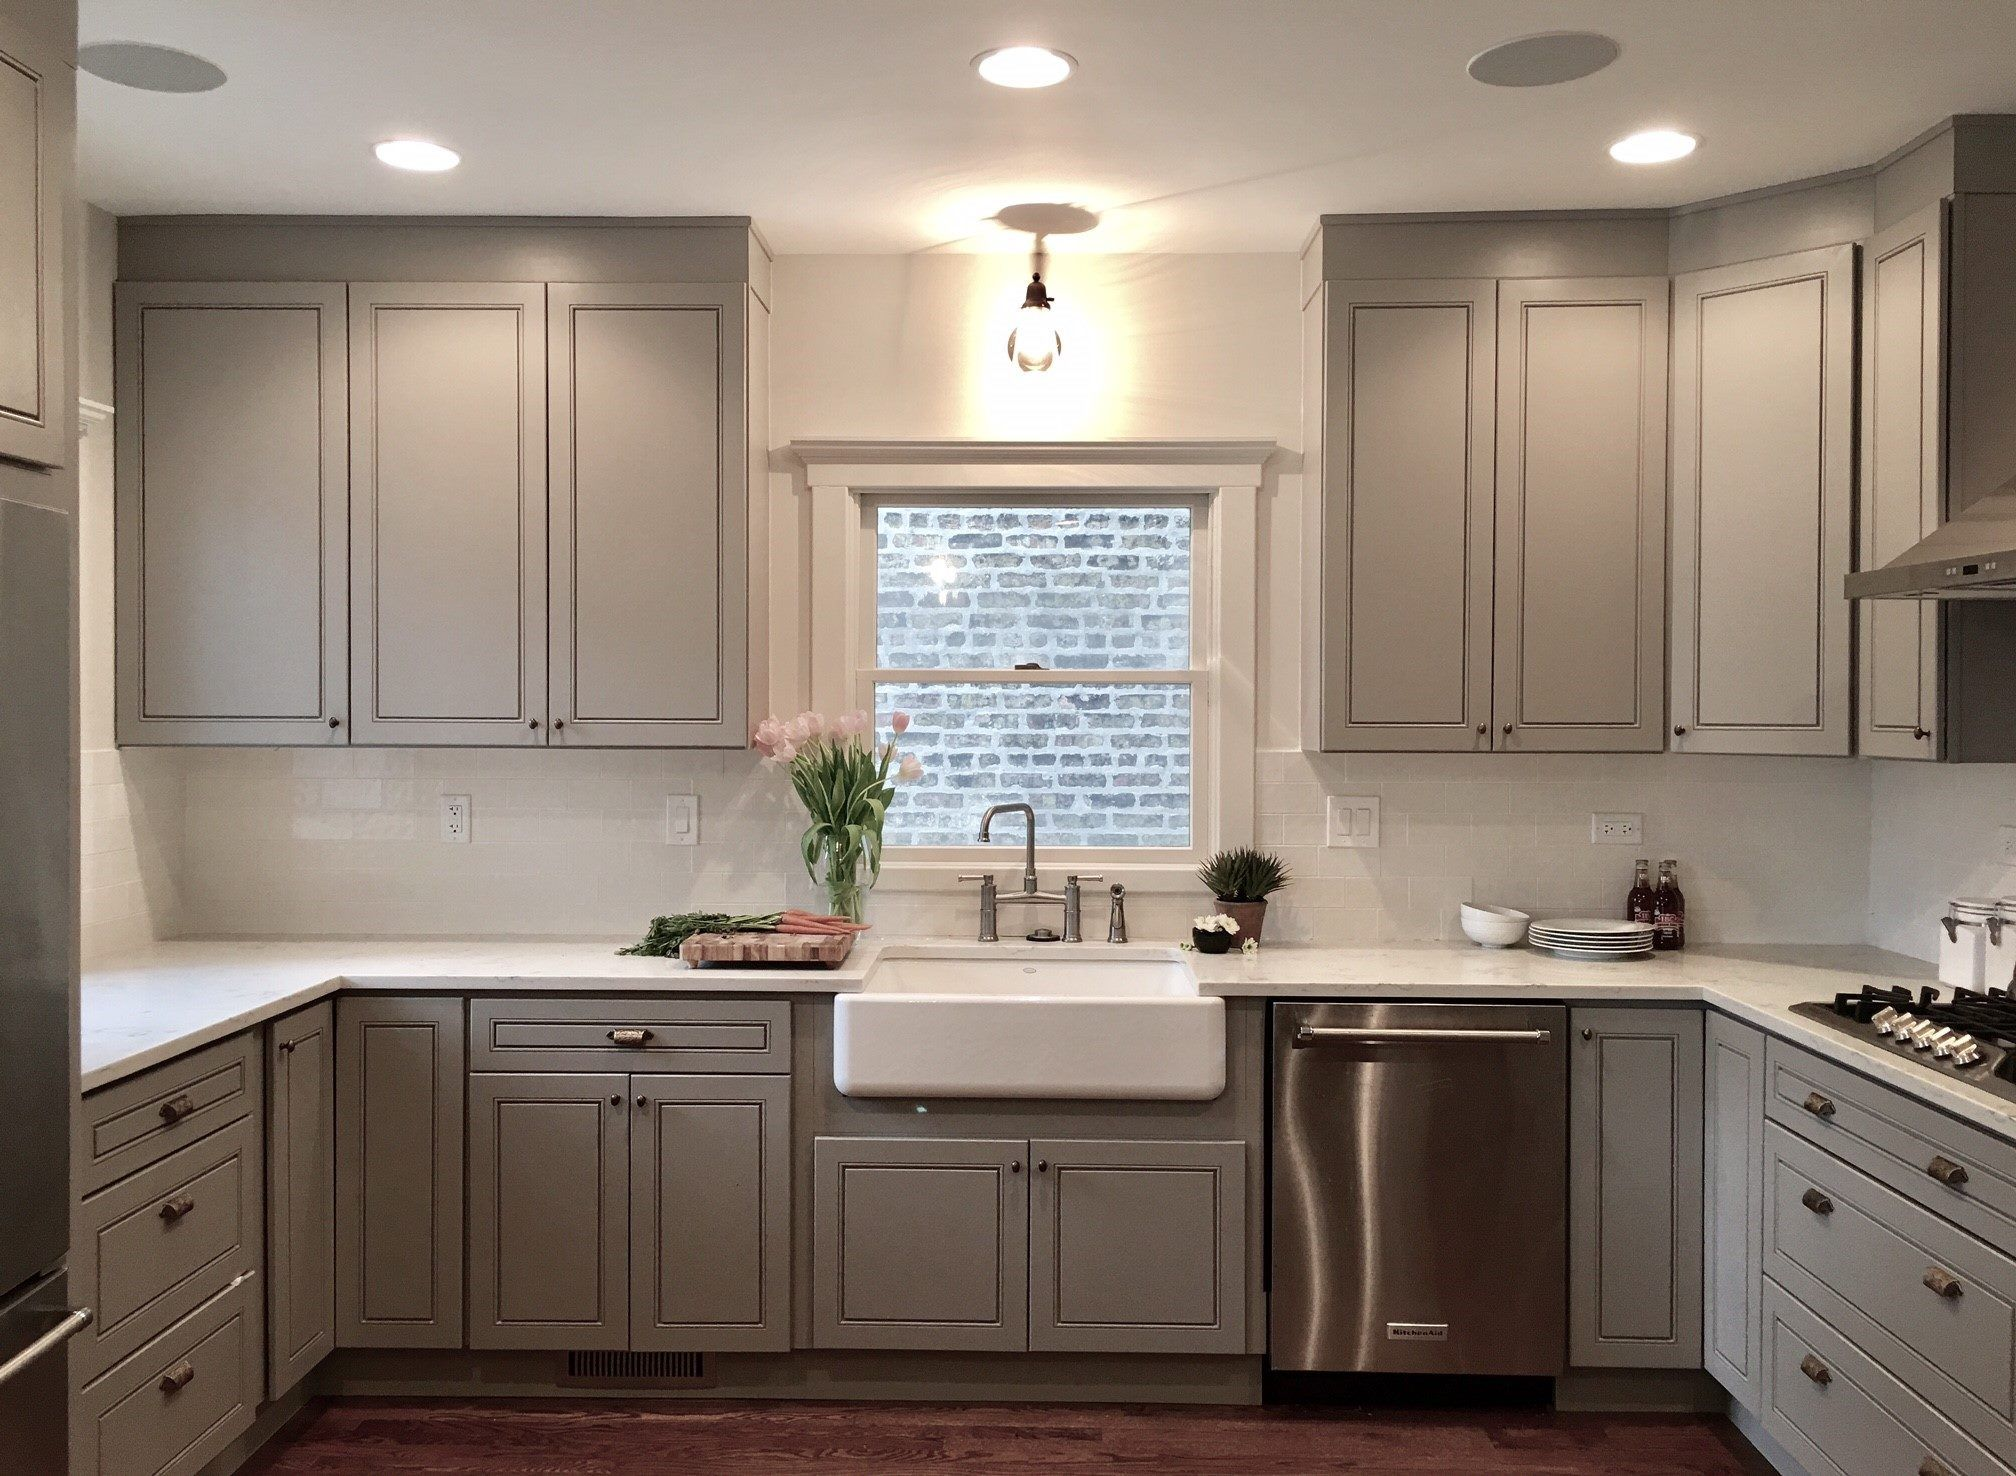 advanced kitchen and bath niles. modern grey cabinets #gtime #niles #chicago #kitchen #interiordesign #homedesign # advanced kitchen and bath niles n